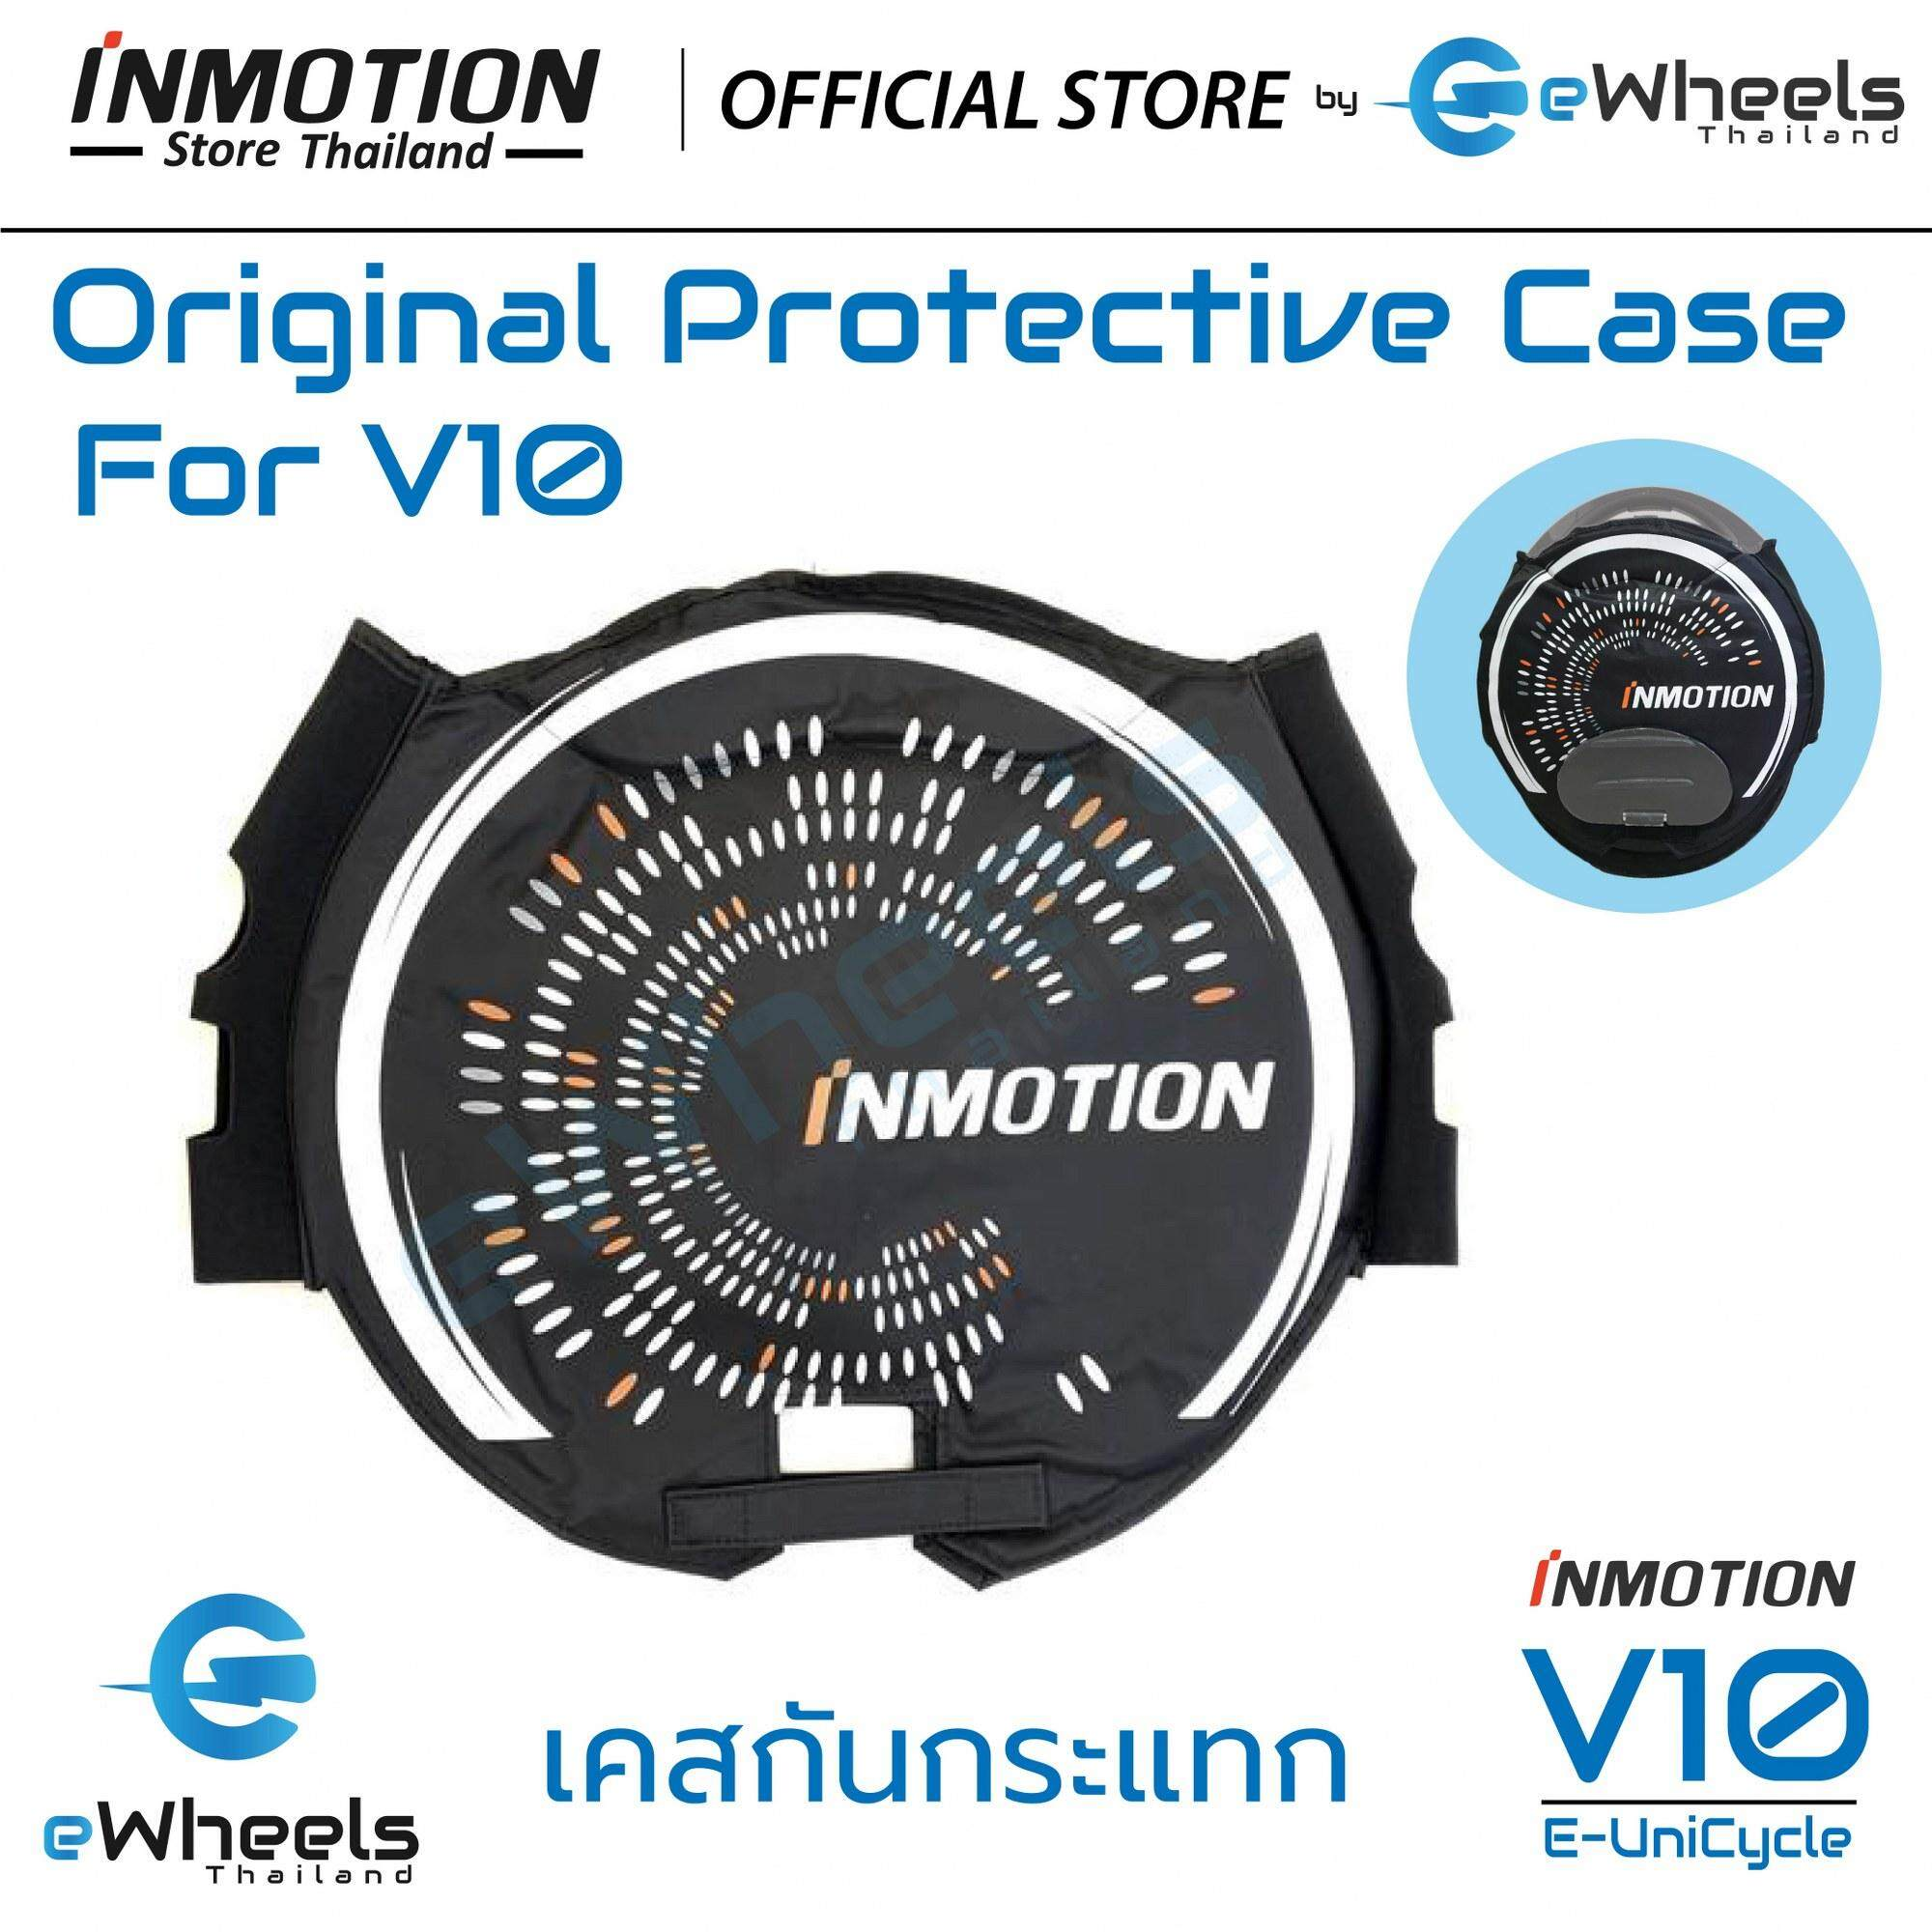 เคสกันกระแทก สำหรับ V10/f ของแท้ Original Inmotion V10/f Protective Case By Inmotion Thailand (by Ewheels Thailand).